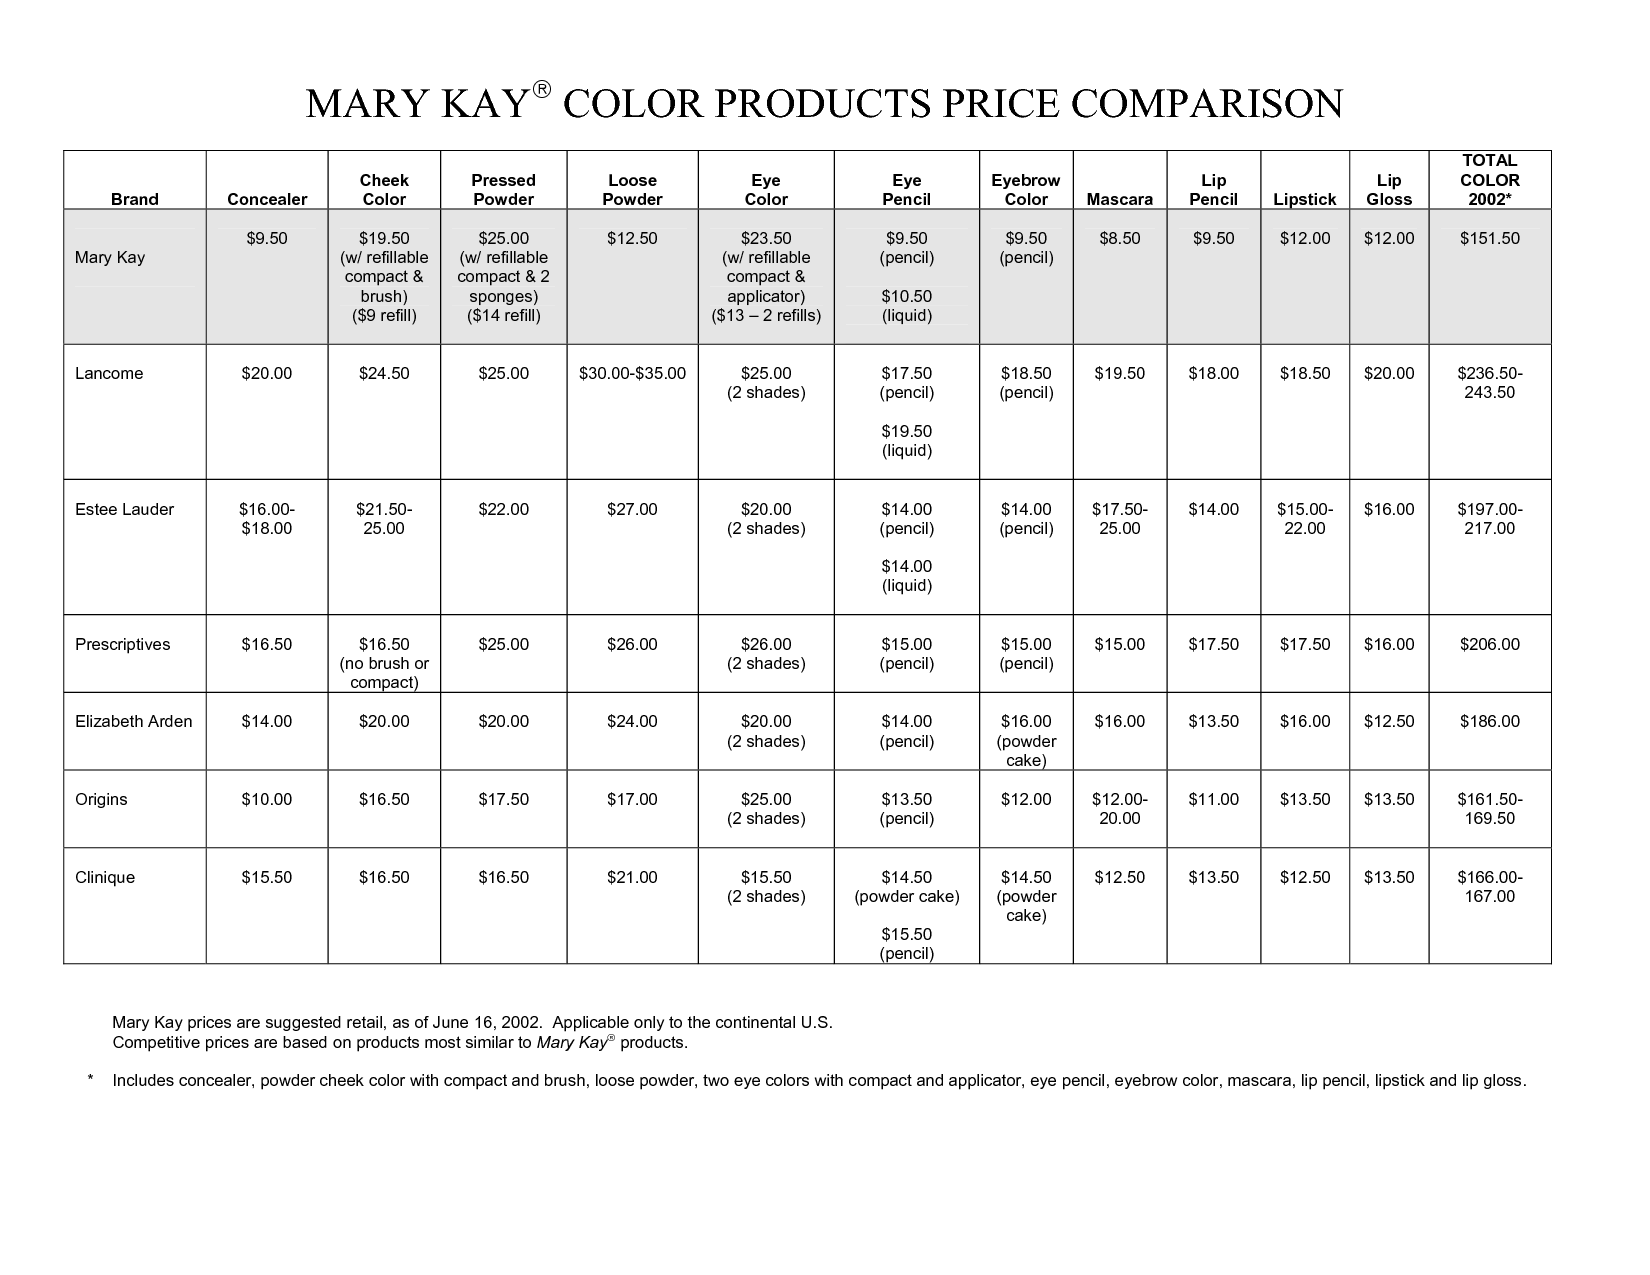 mary kay lipstick coloring pages   mary kay Comparison Sheet   images of mary kay color ...